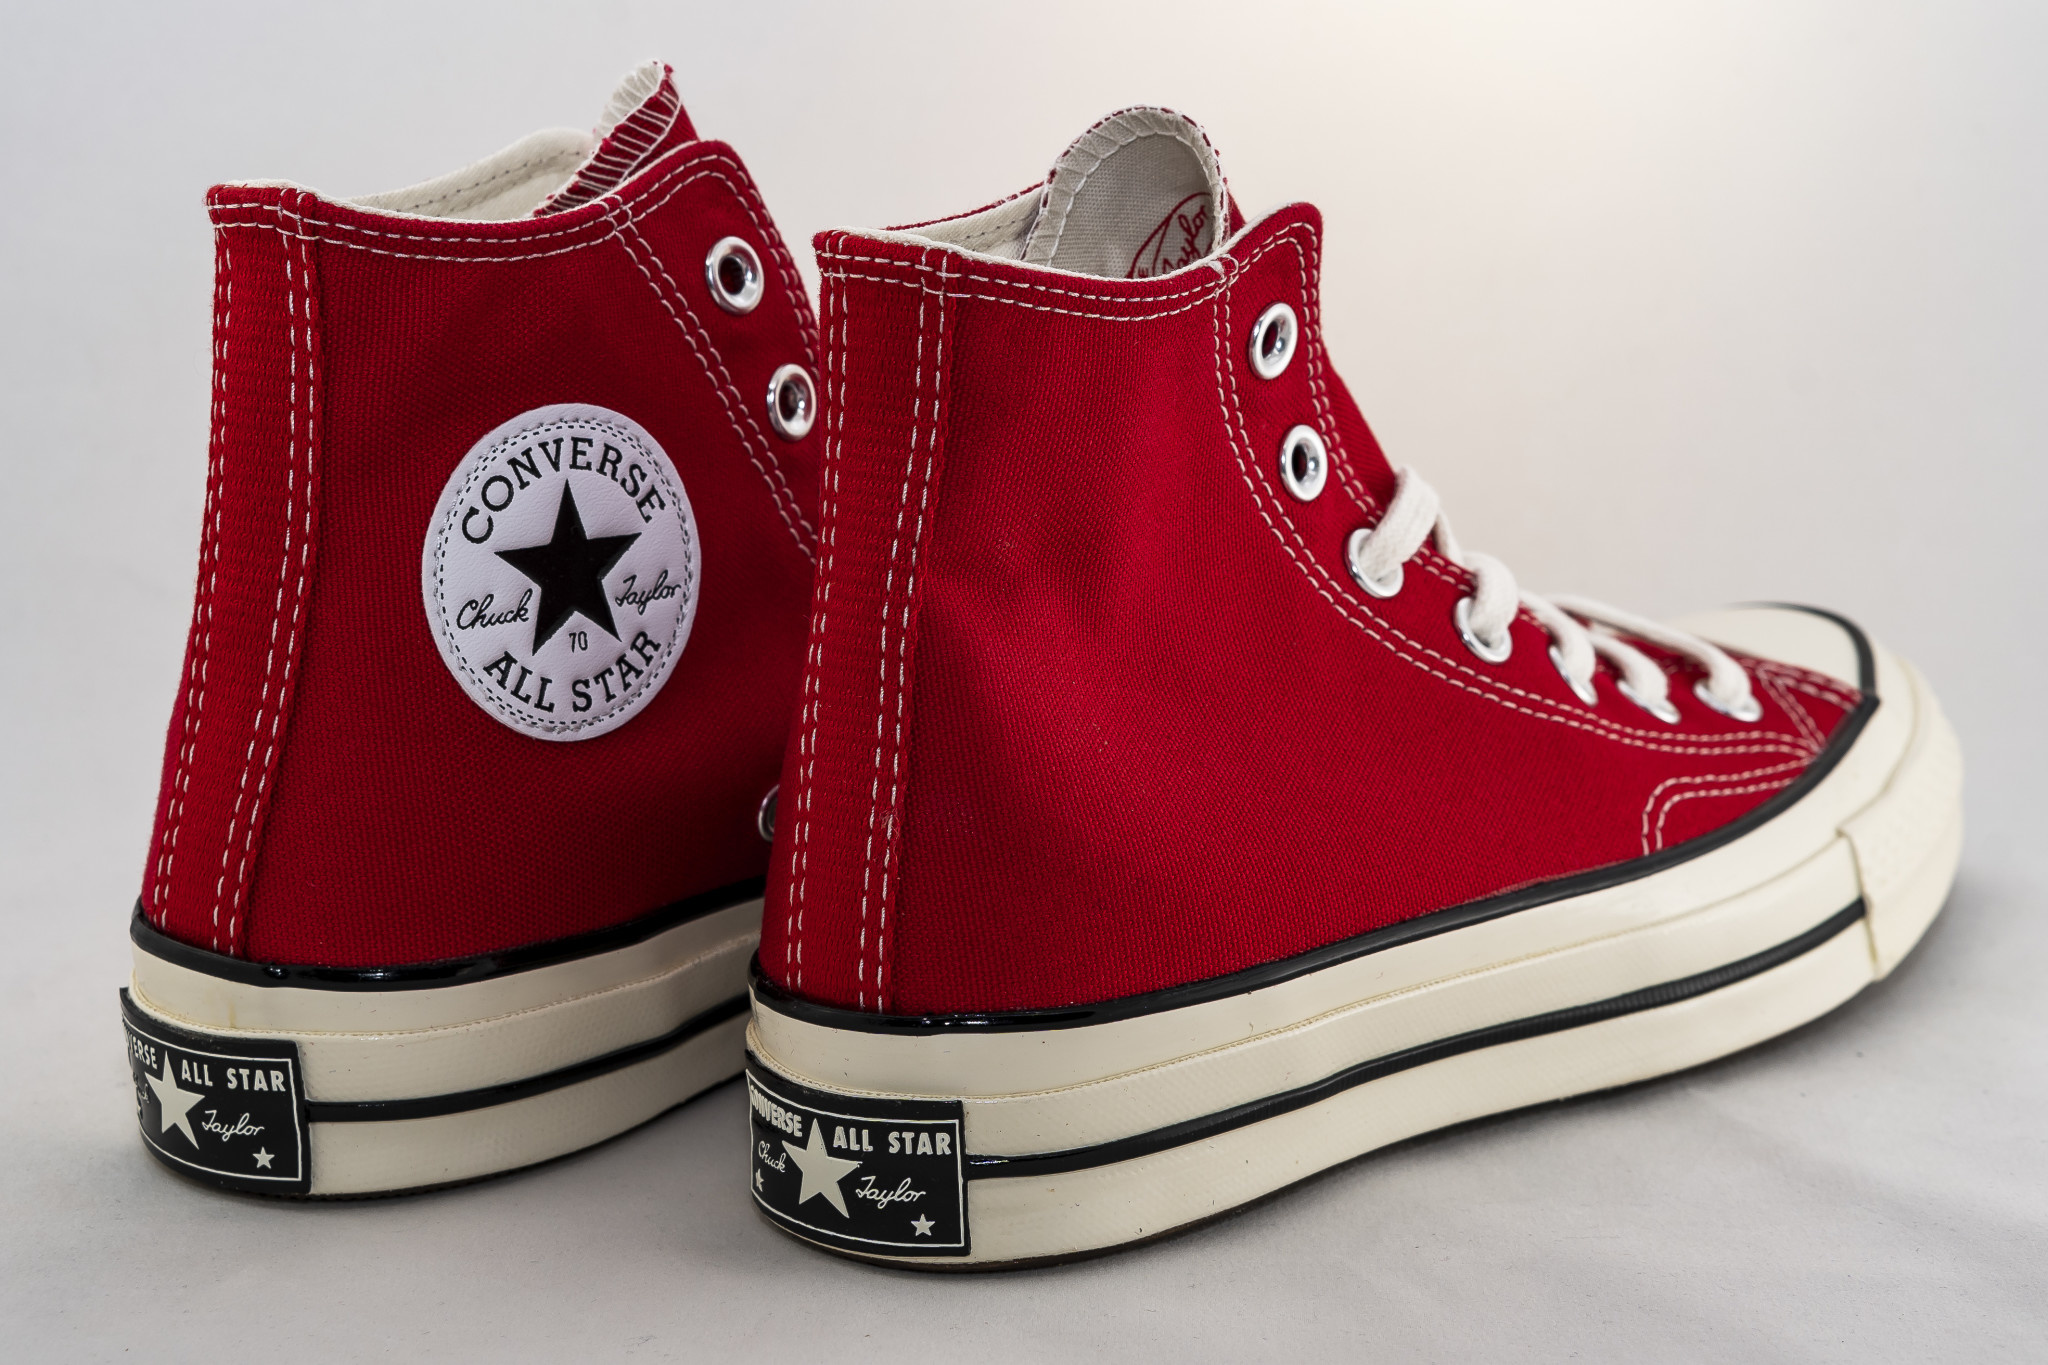 CONVERSE ALL STAR 70 HI Enamel Red/ Egret/ Black